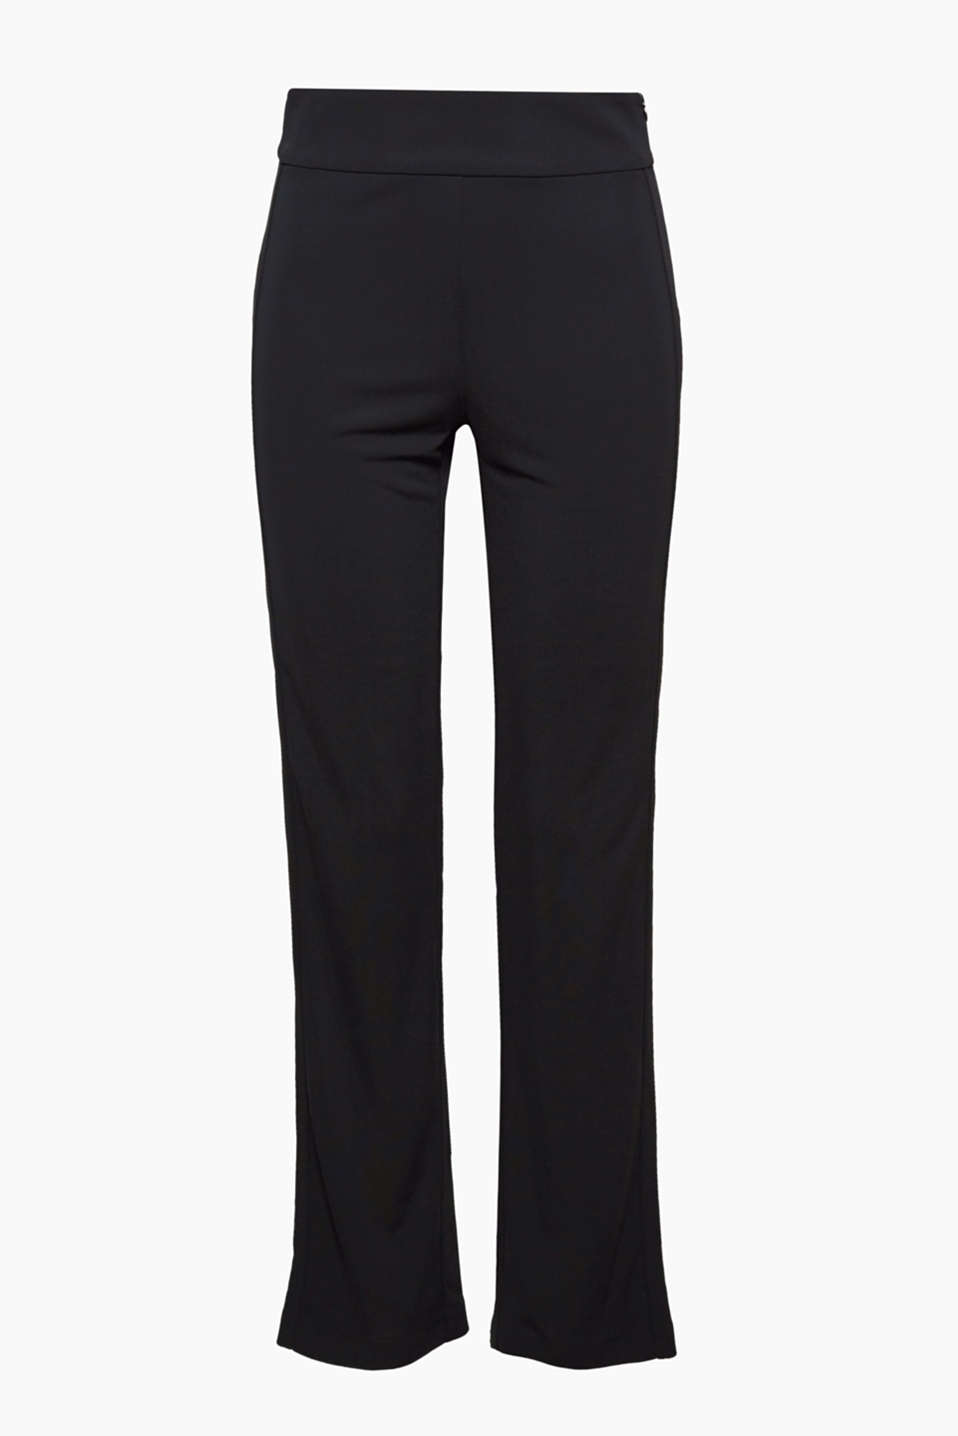 These beautifully draped jersey trousers are crease-resistant, perfect for special occasions and travelling!